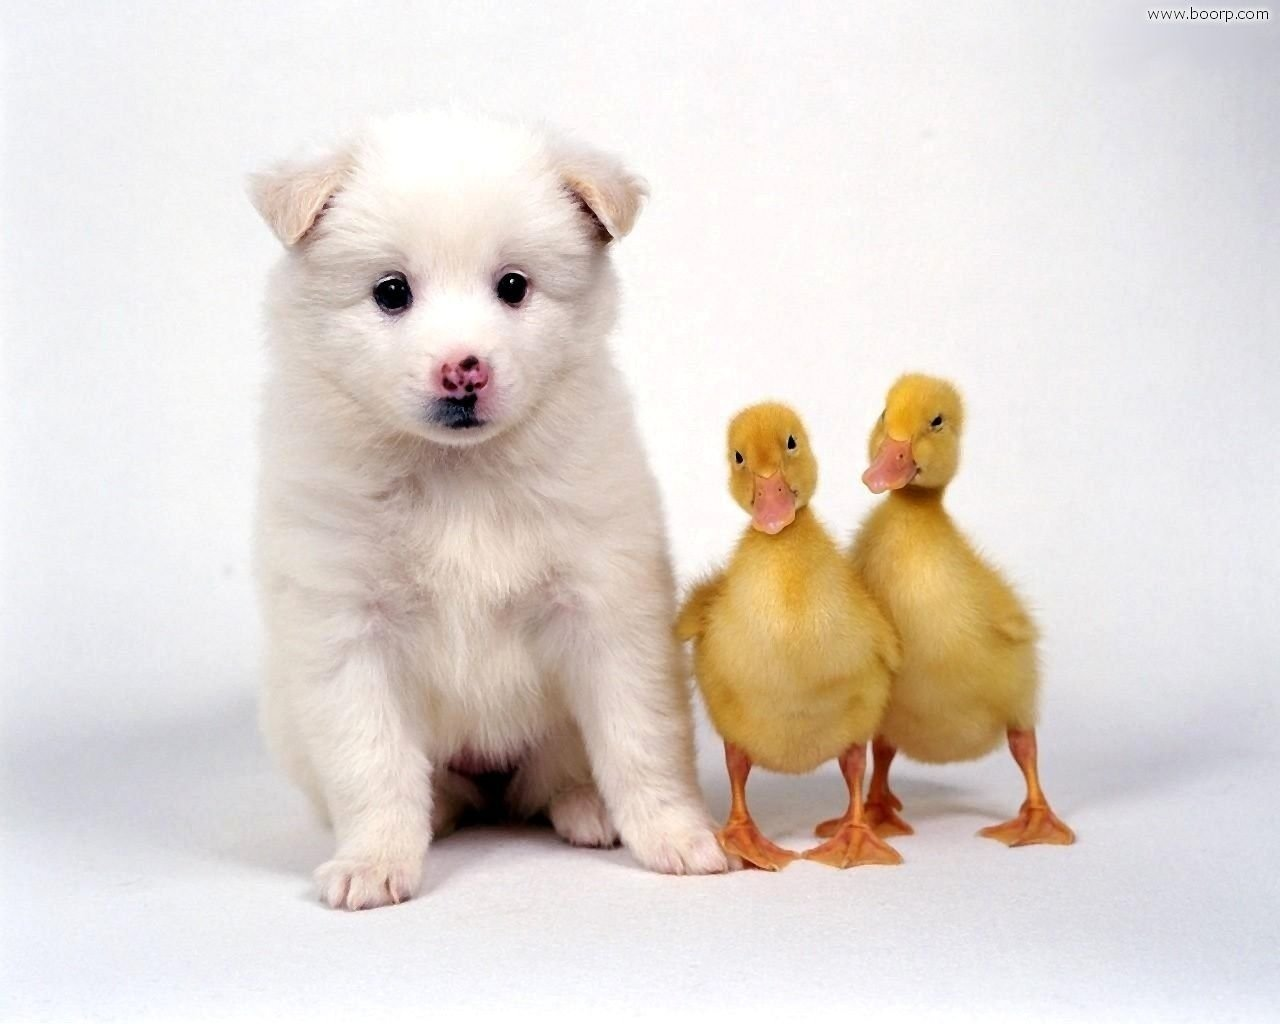 pets puppies type wallpaper for wallpaper n 29408 almost square 4 1280x1024